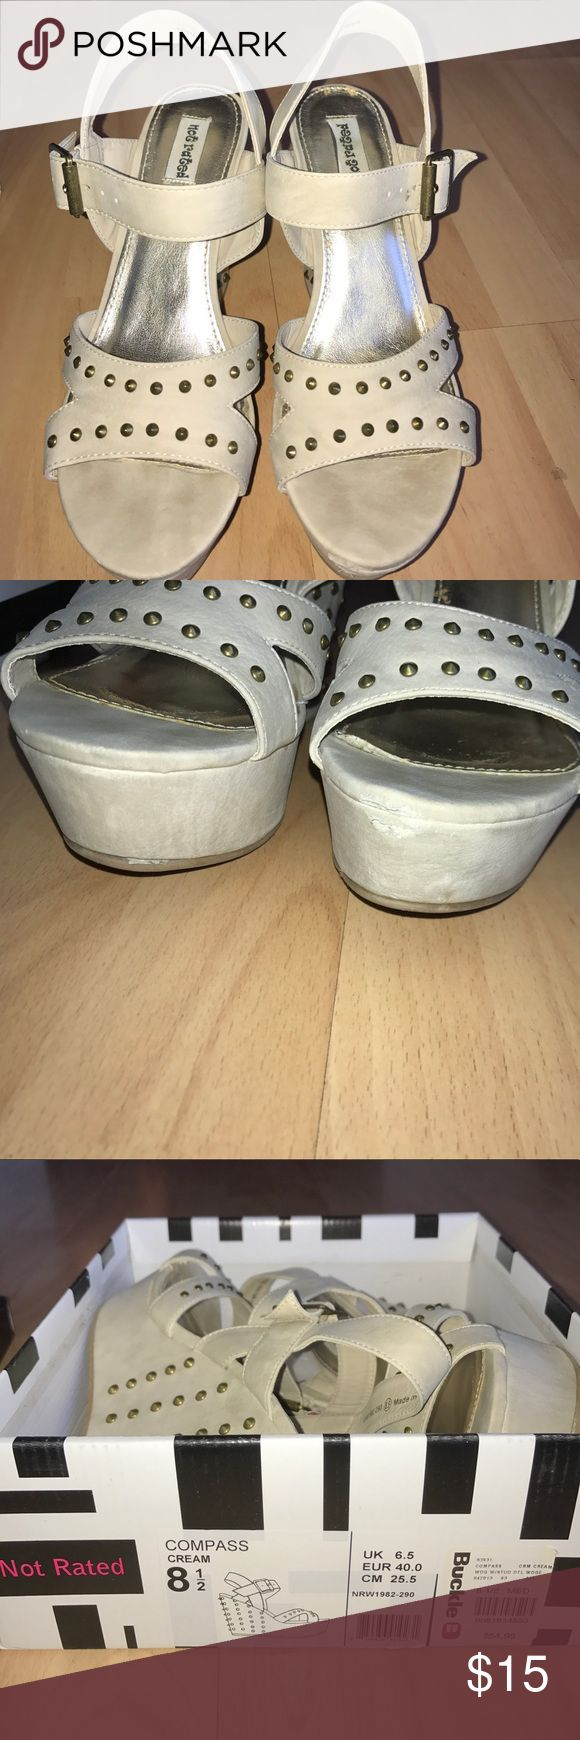 Not Rated Wedges from Buckle Good condition. The only thing wrong with these is a small scuff on the end (shown in pictures). Not Rated Shoes Wedges